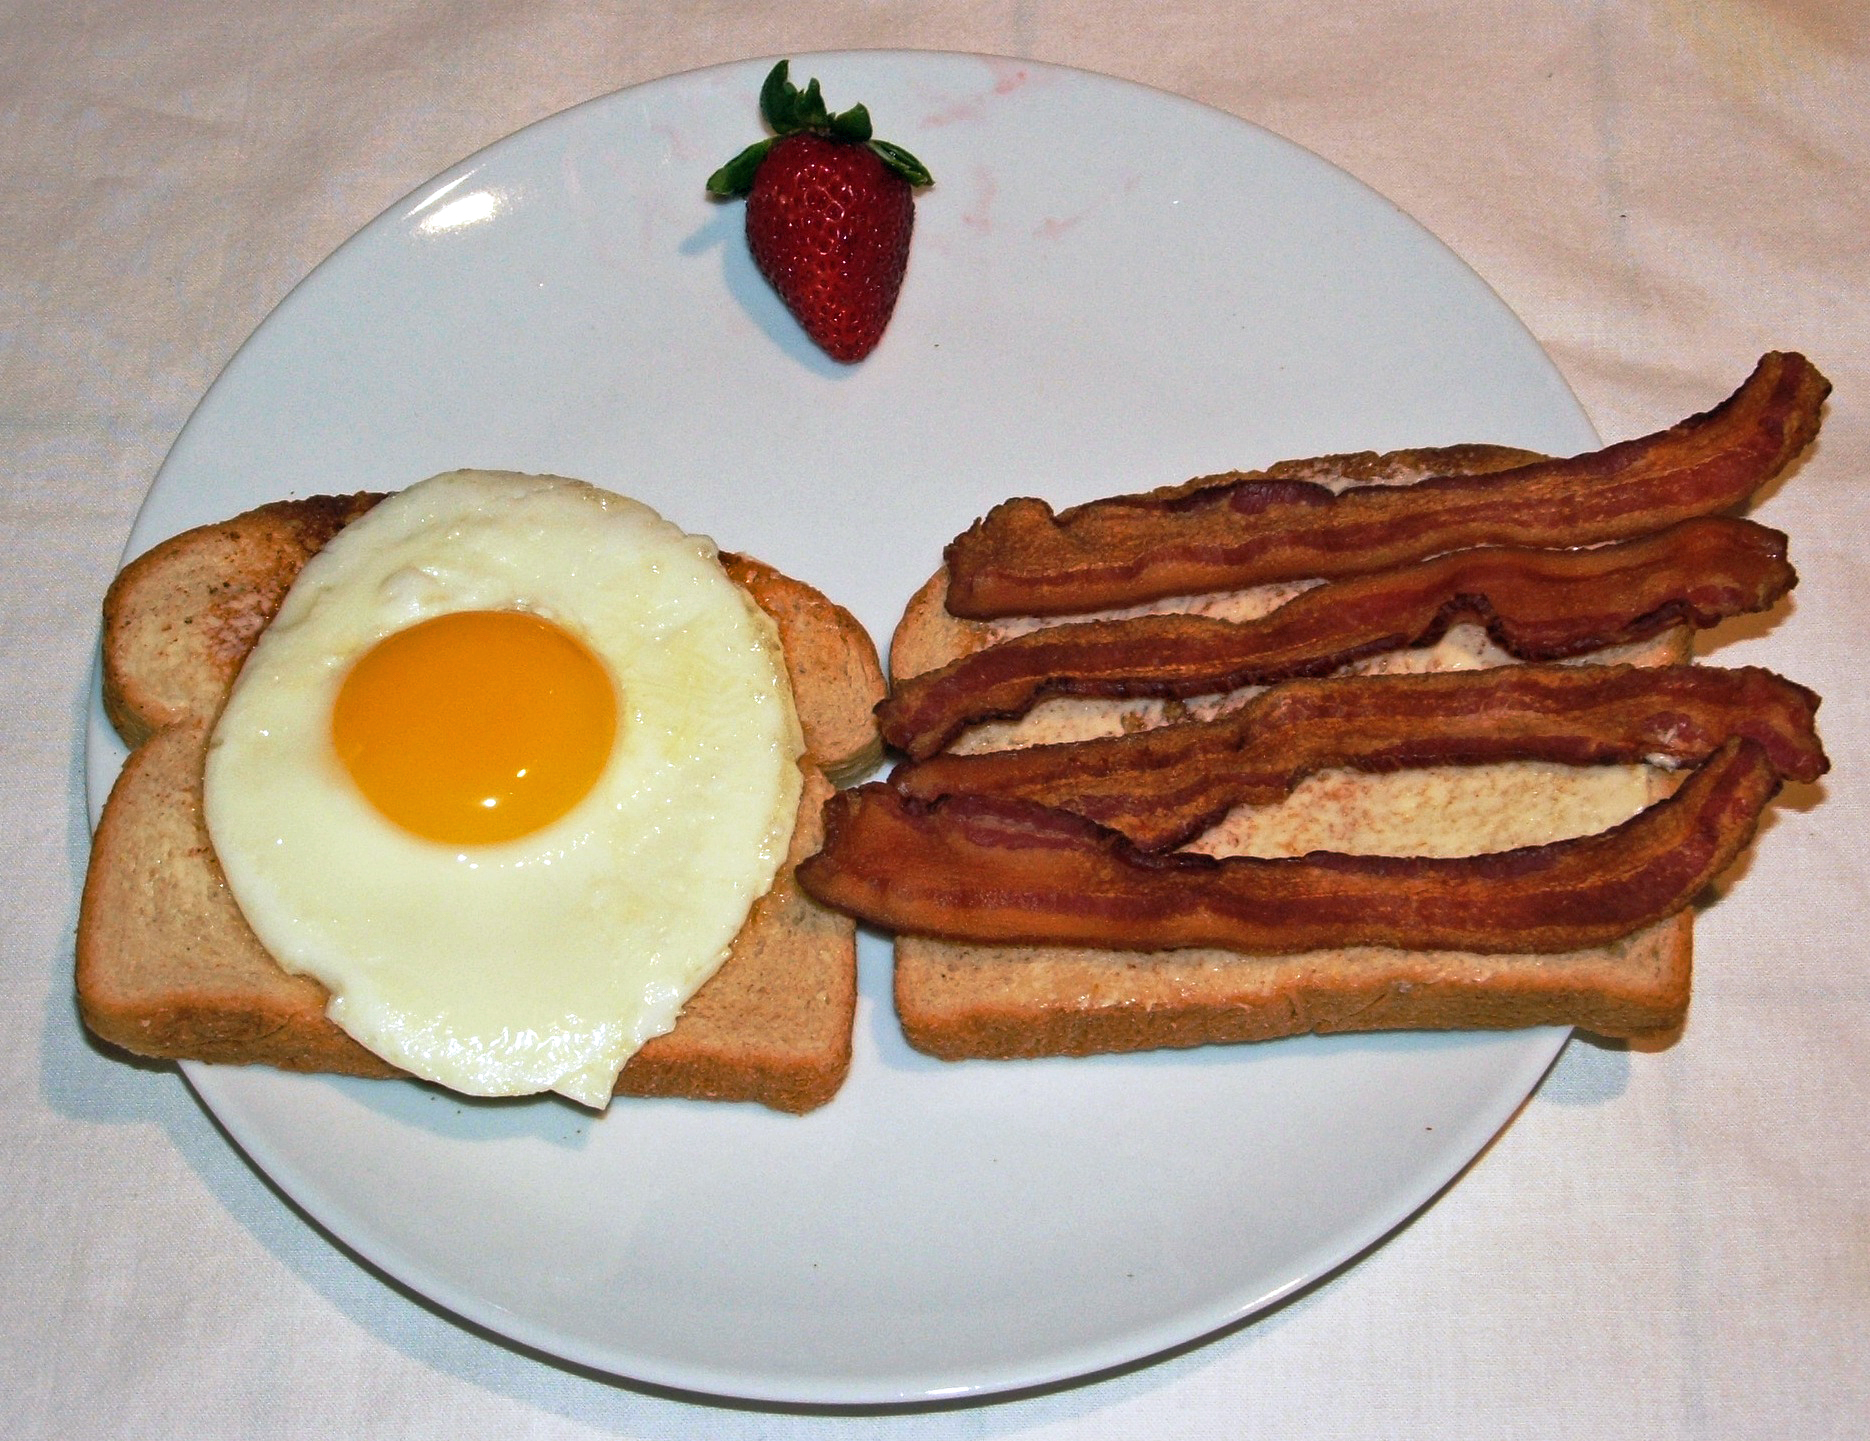 File:Bacon and egg sandwich - open face.JPG - Wikipedia, the free ...